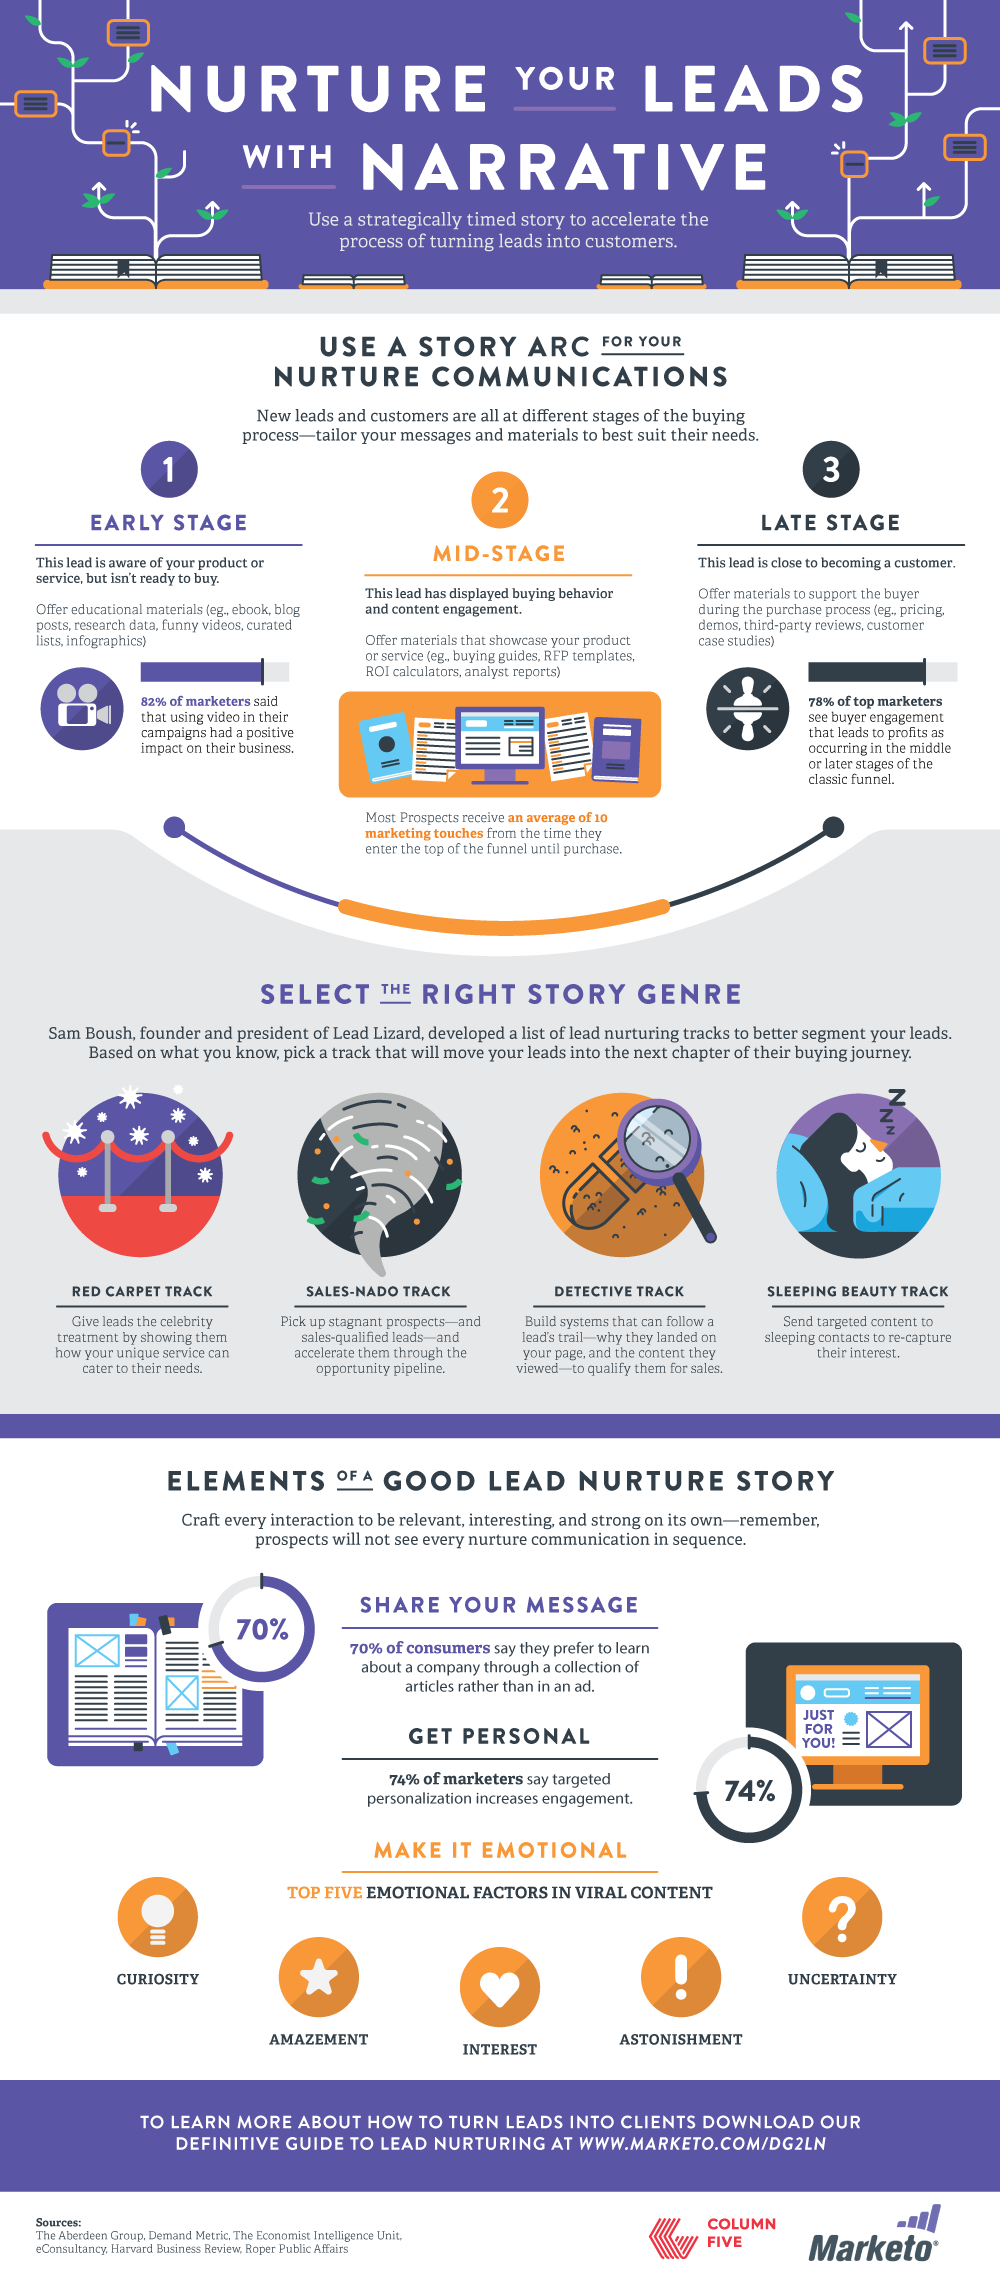 Nurture Your Leads With Narrative